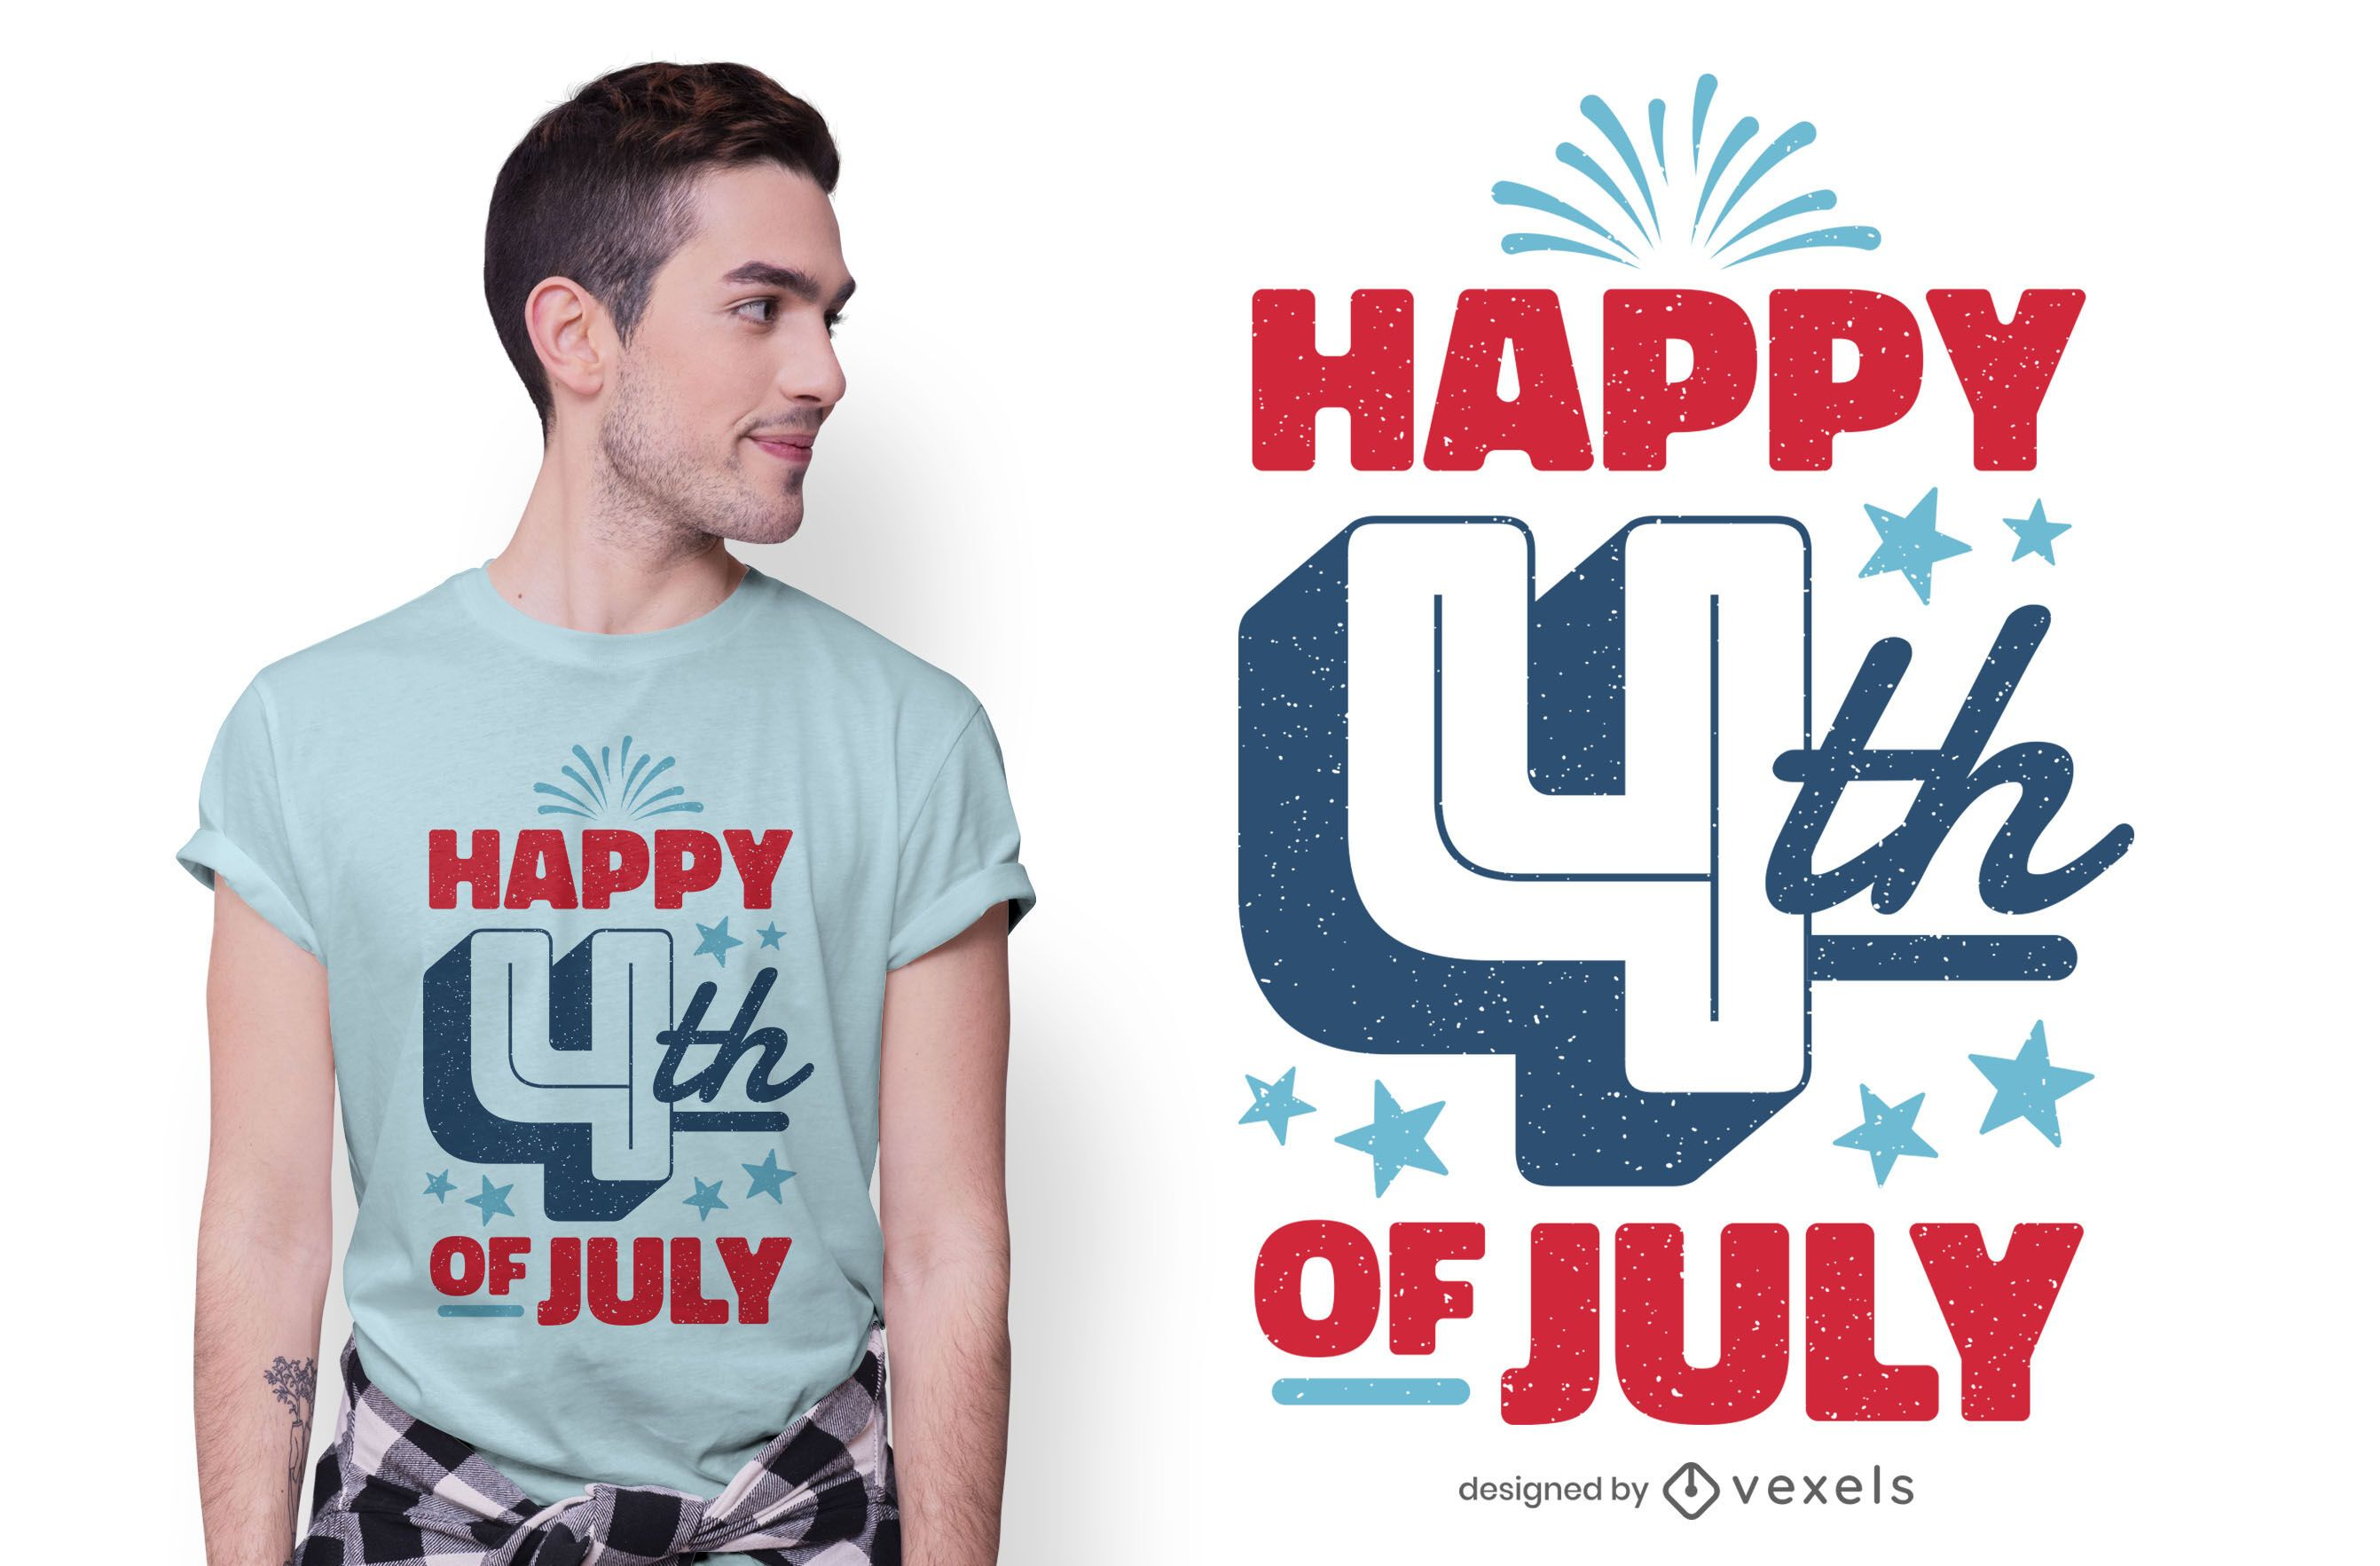 Happy 4th of july t-shirt design